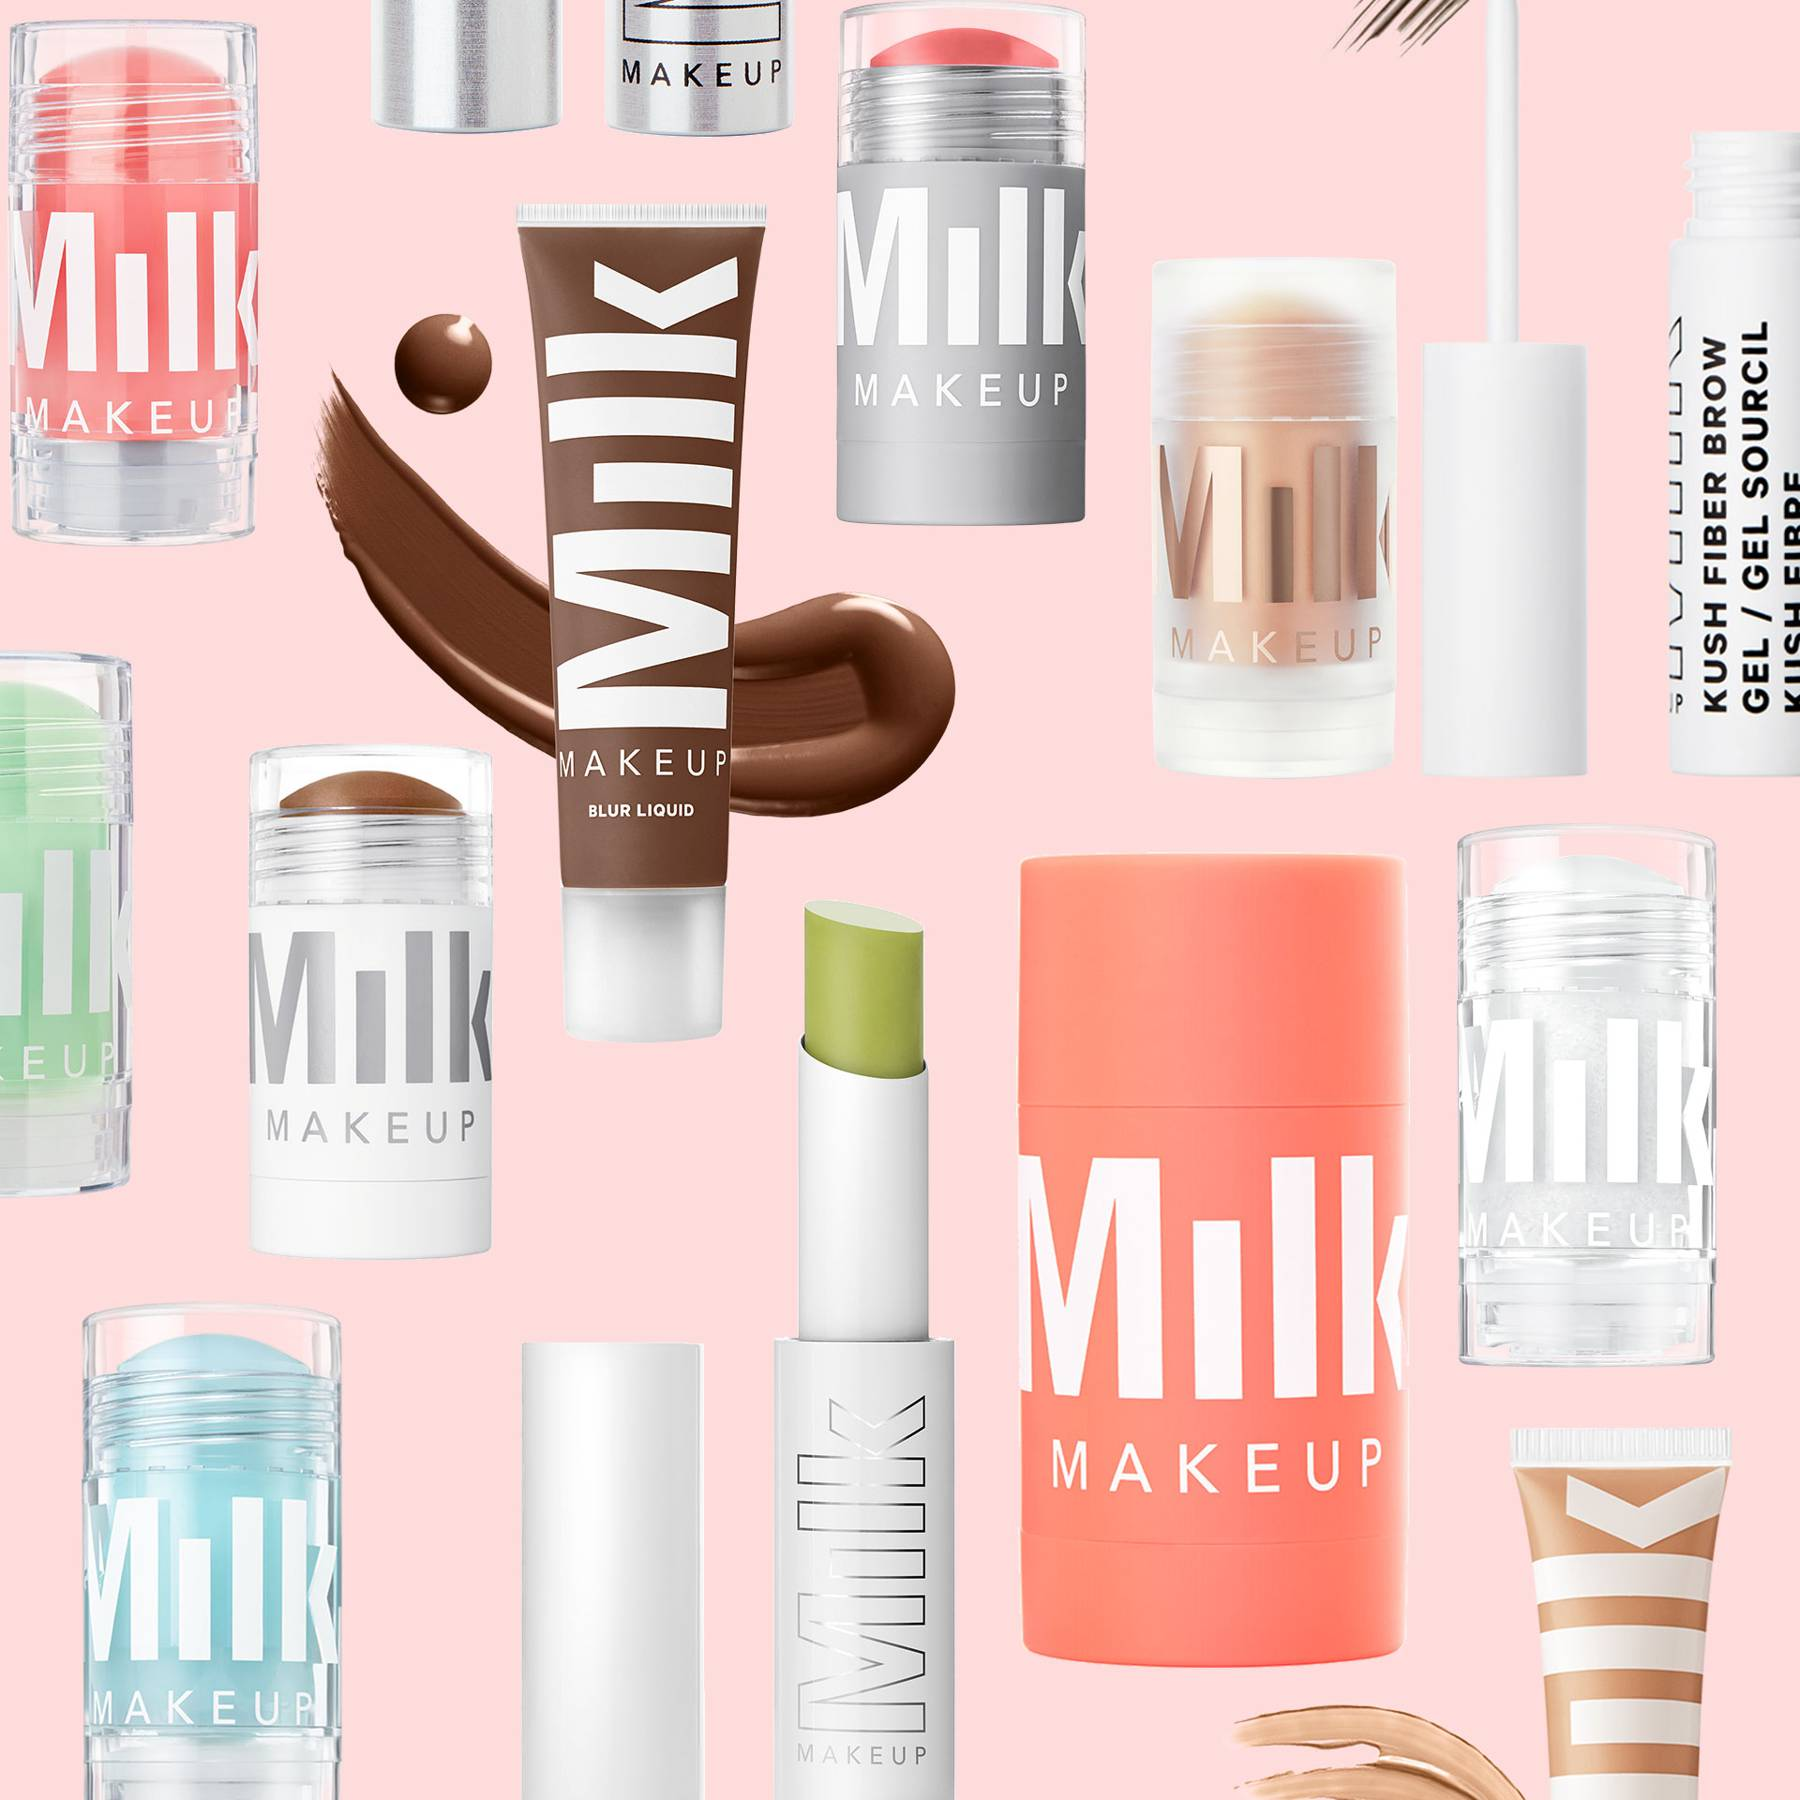 492db871c605 Milk Make-Up Is Finally Launching In The UK